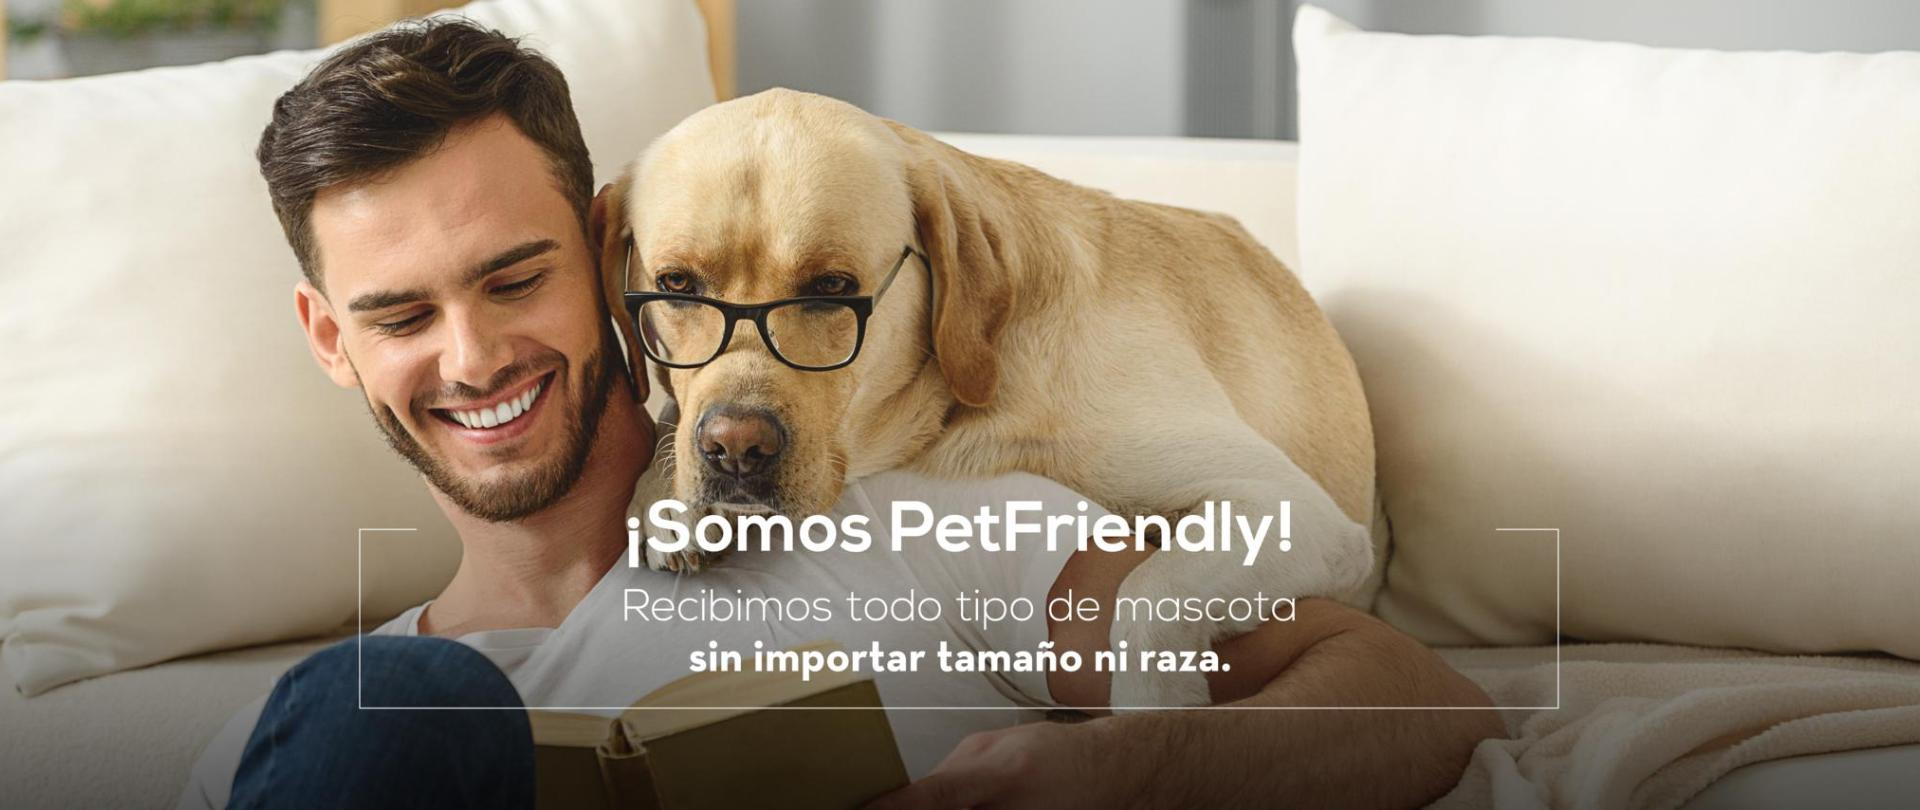 www-jazzapartments-com-somos-pet-friendly-espa-ol.png